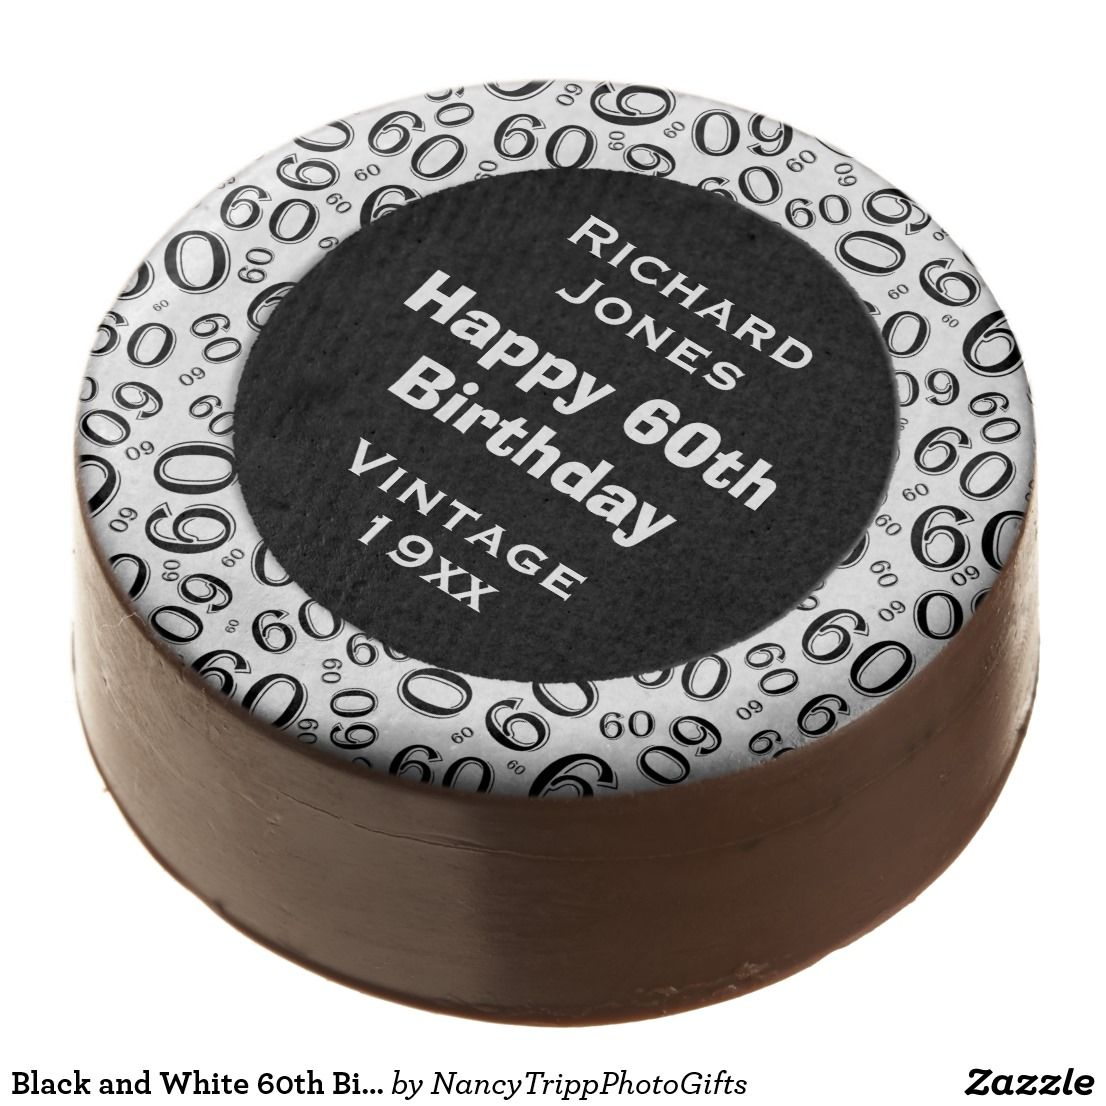 Black and White 60th Birthday Number Collage Choco